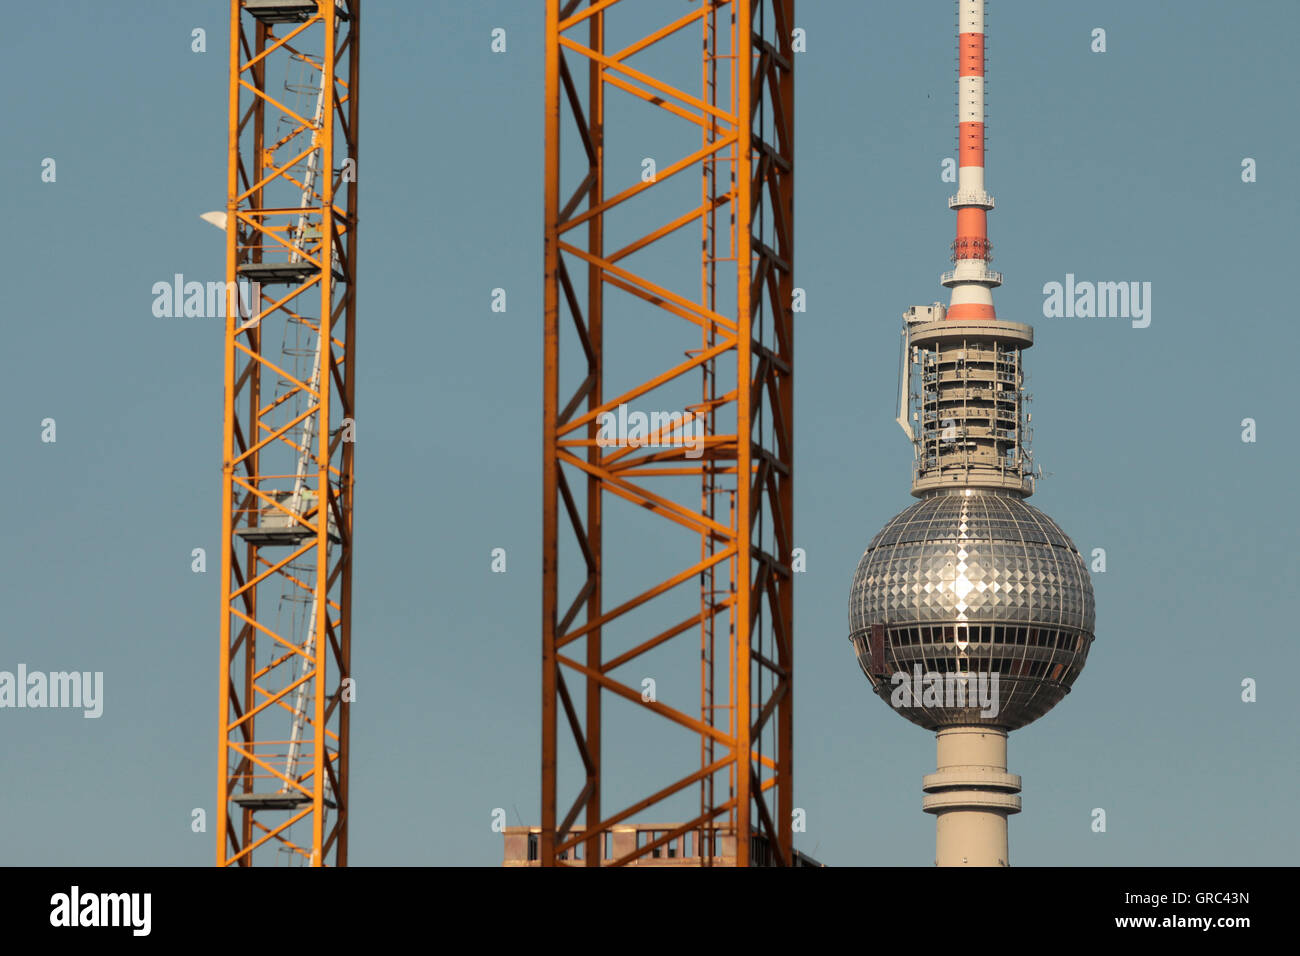 Construction Work At Berlin Fernsehturm - Stock Image